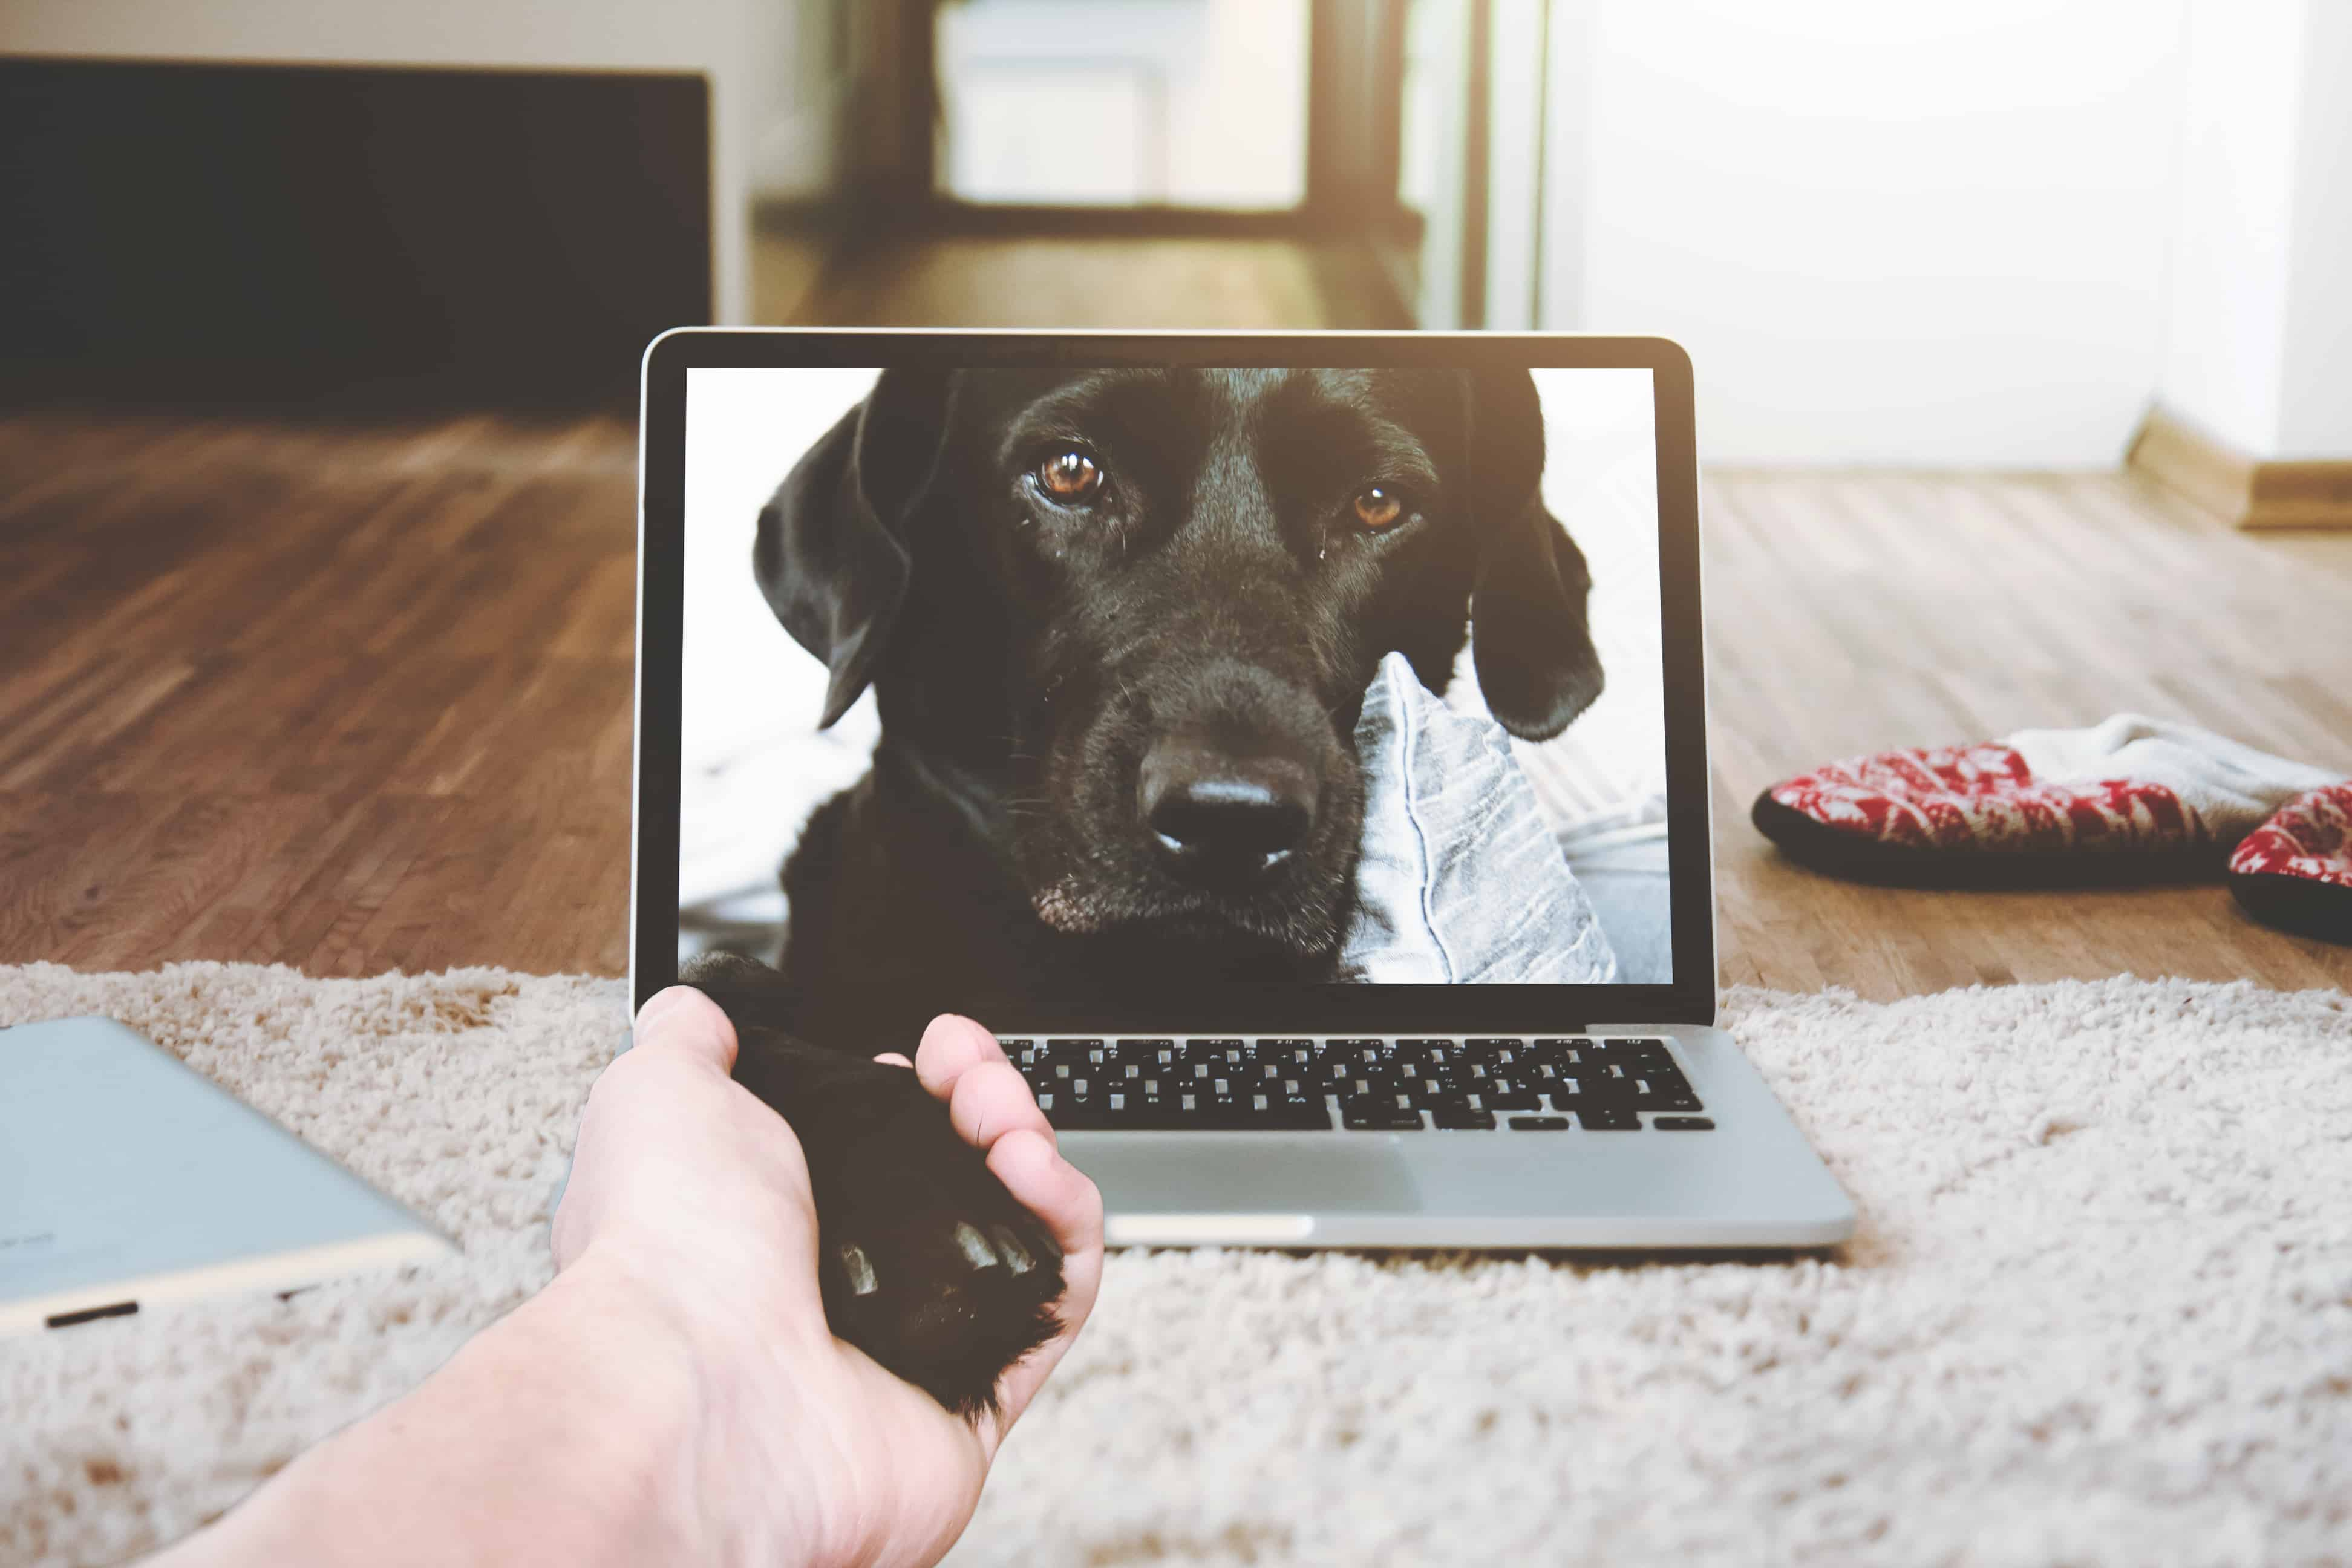 A dog's face on a laptop